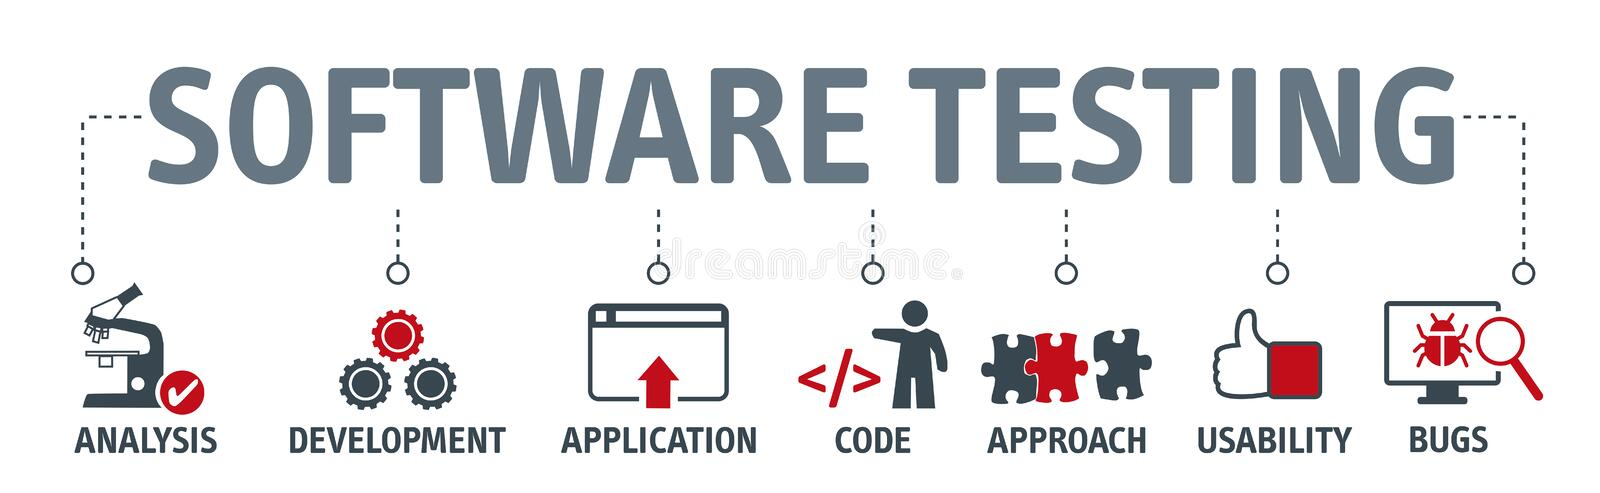 Banner software testing with vector icons royalty free illustration